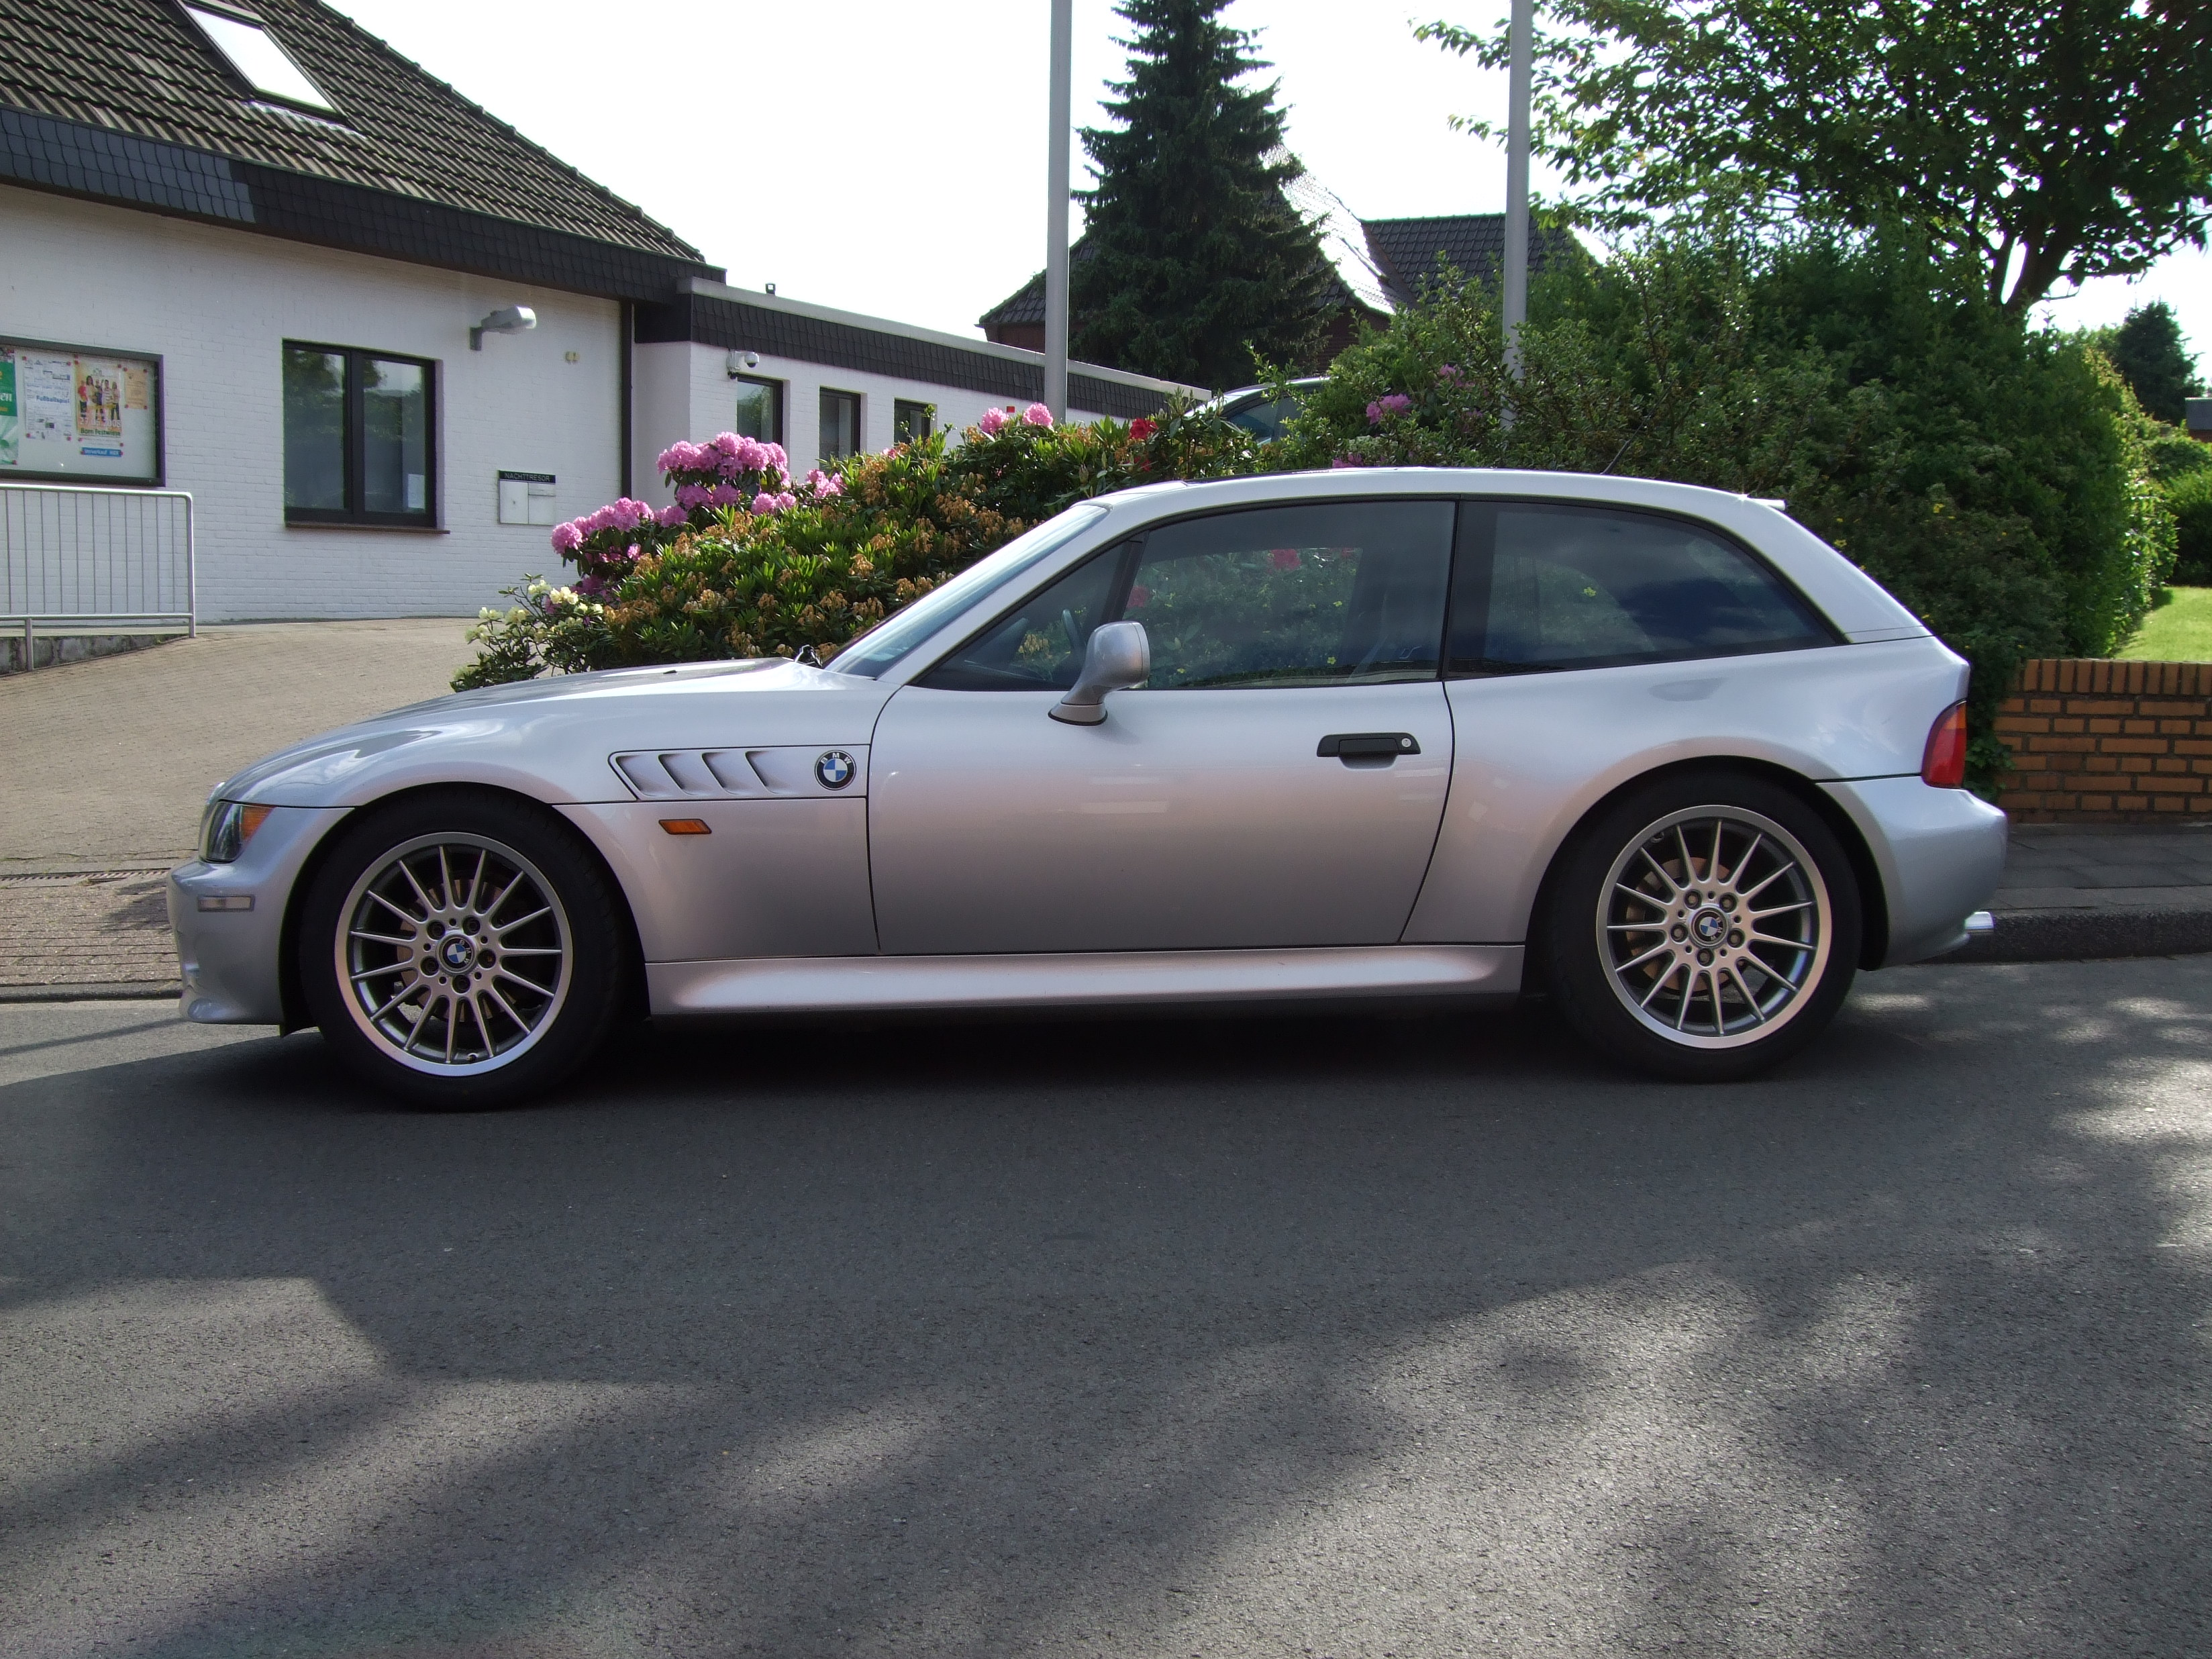 bmw z3 coupe 2000 images #4